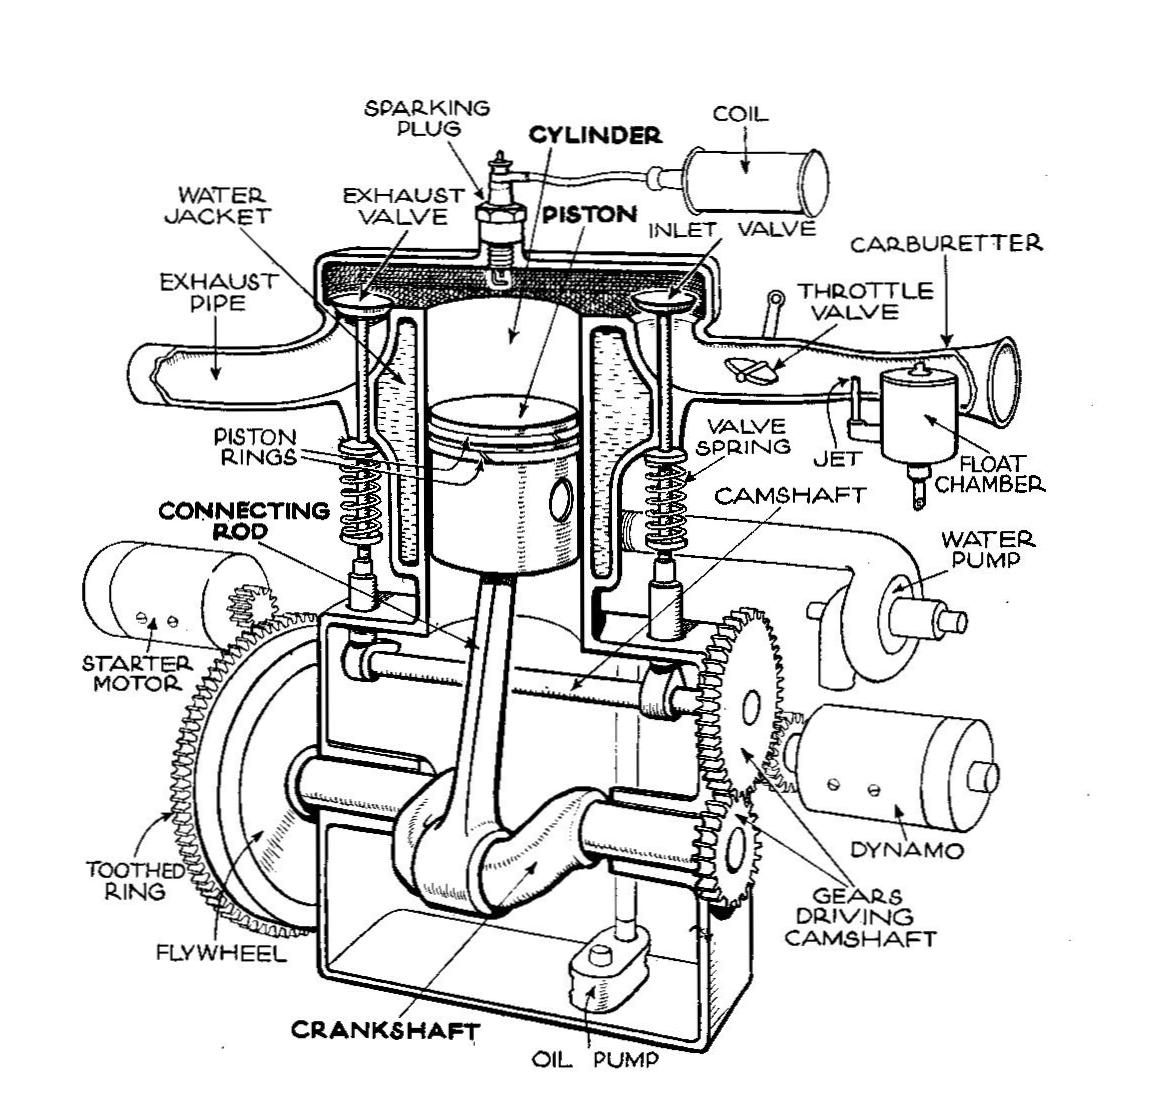 flathead engine wikipedia rh en wikipedia org Honda Car Engine Parts Diagram Car Engine Diagram with Labels